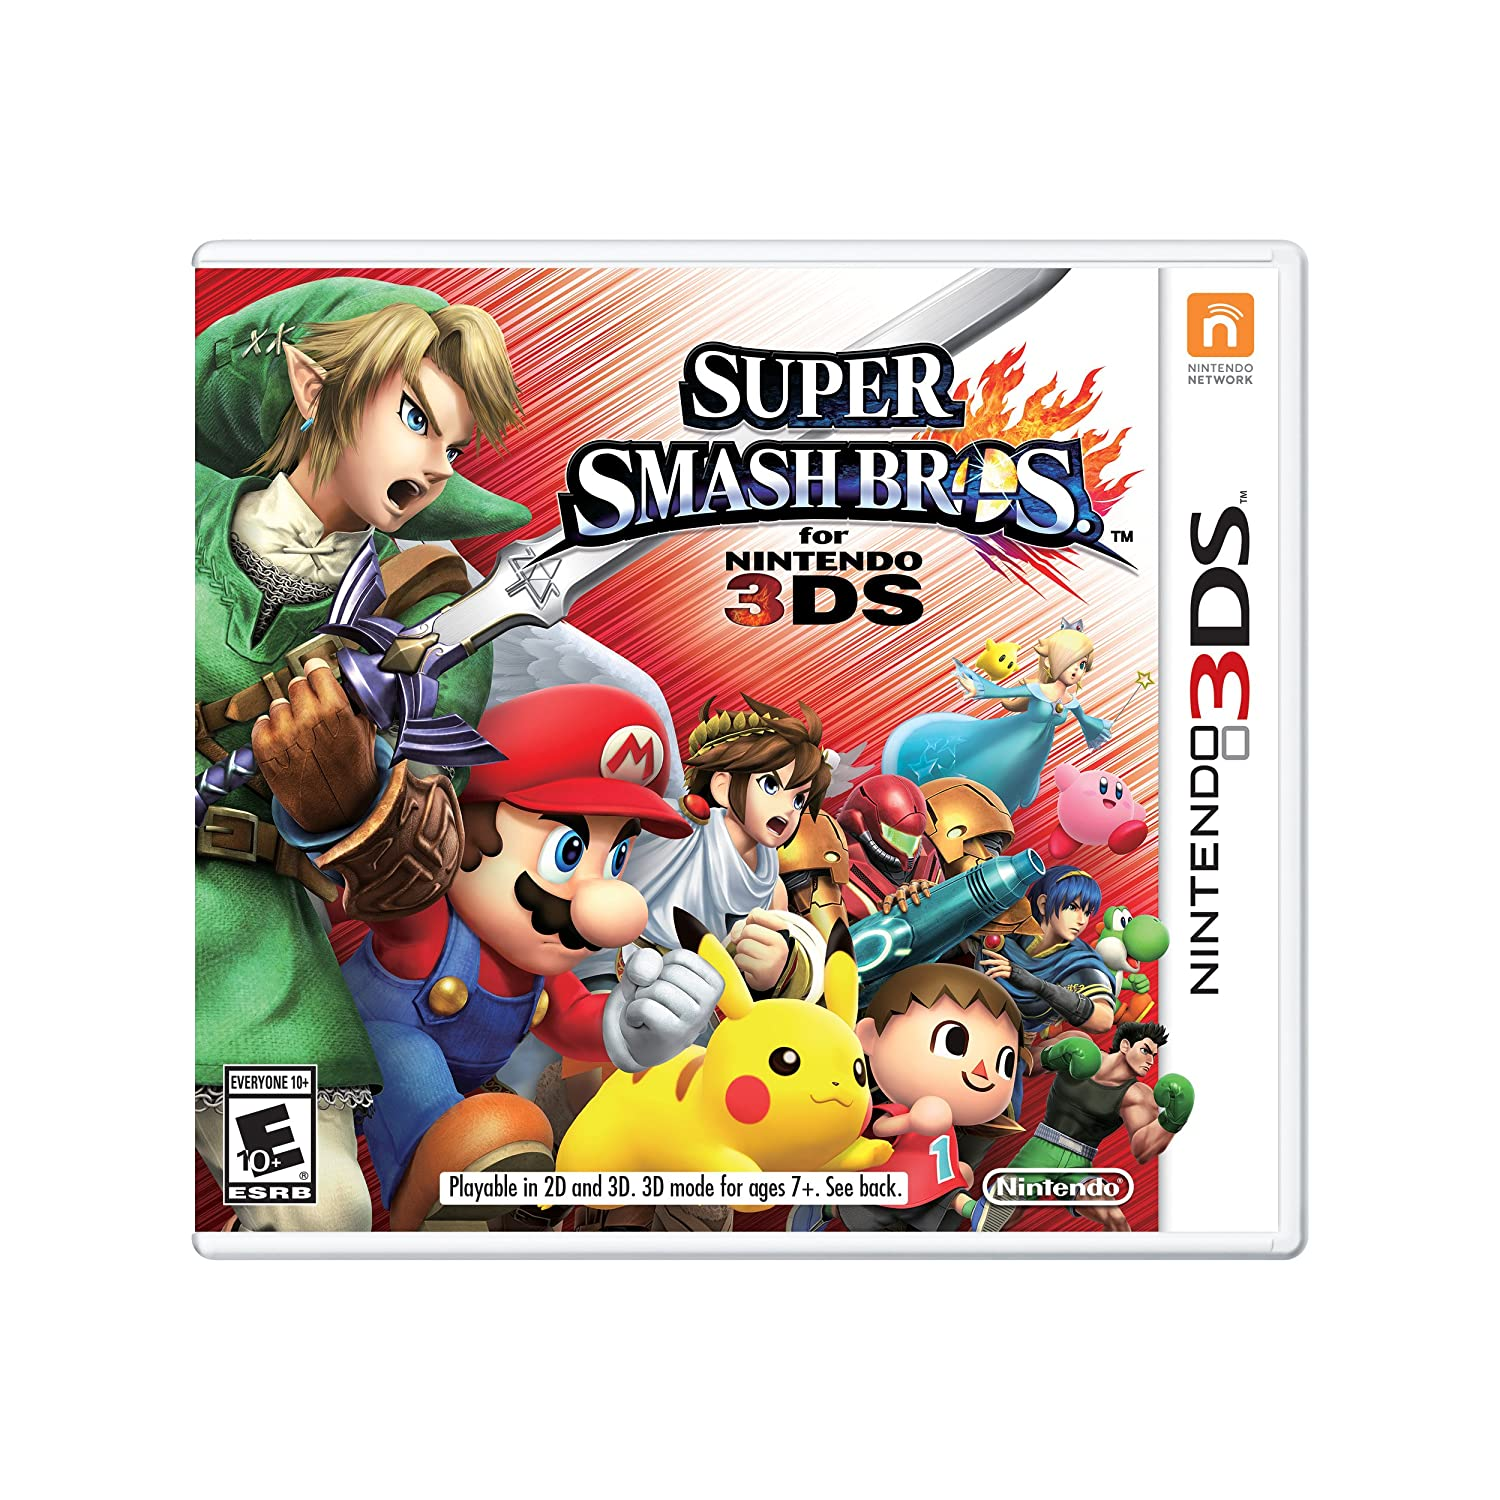 Super Smash Bros  - Nintendo 3DS Smash Bros  Edition